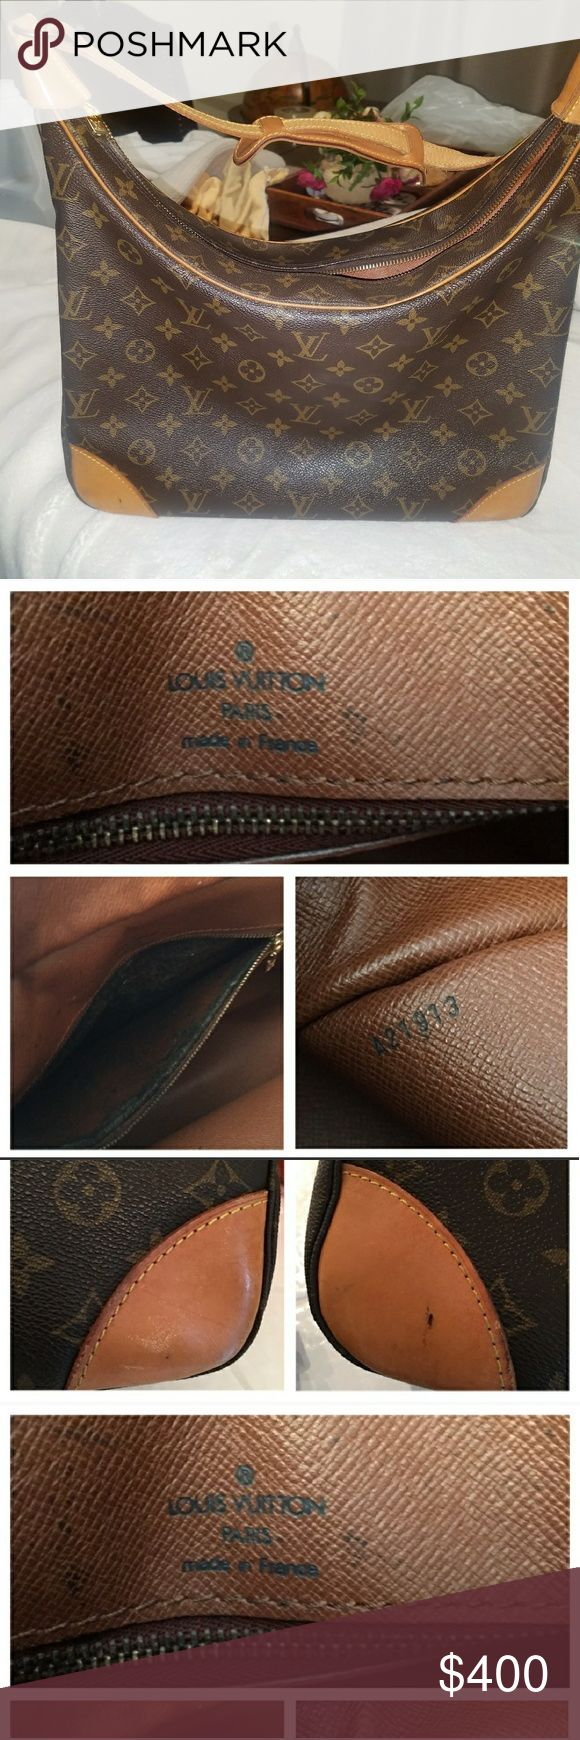 """Authentic Louis vuitton Boulogne 35 Authentic Louis vuitton Boulogne 35, the largest size. Perfect size to fit everything plus some. Can also be used as a computer bag. Golden time on hardware. Honey patina on leather. Zipper pocket is peeling and sticky. Zipper is stiff. W13.7""""x H13.3""""x D4.33"""" Strap 24""""-30"""". Date code A21913 Louis Vuitton Bags Shoulder Bags"""